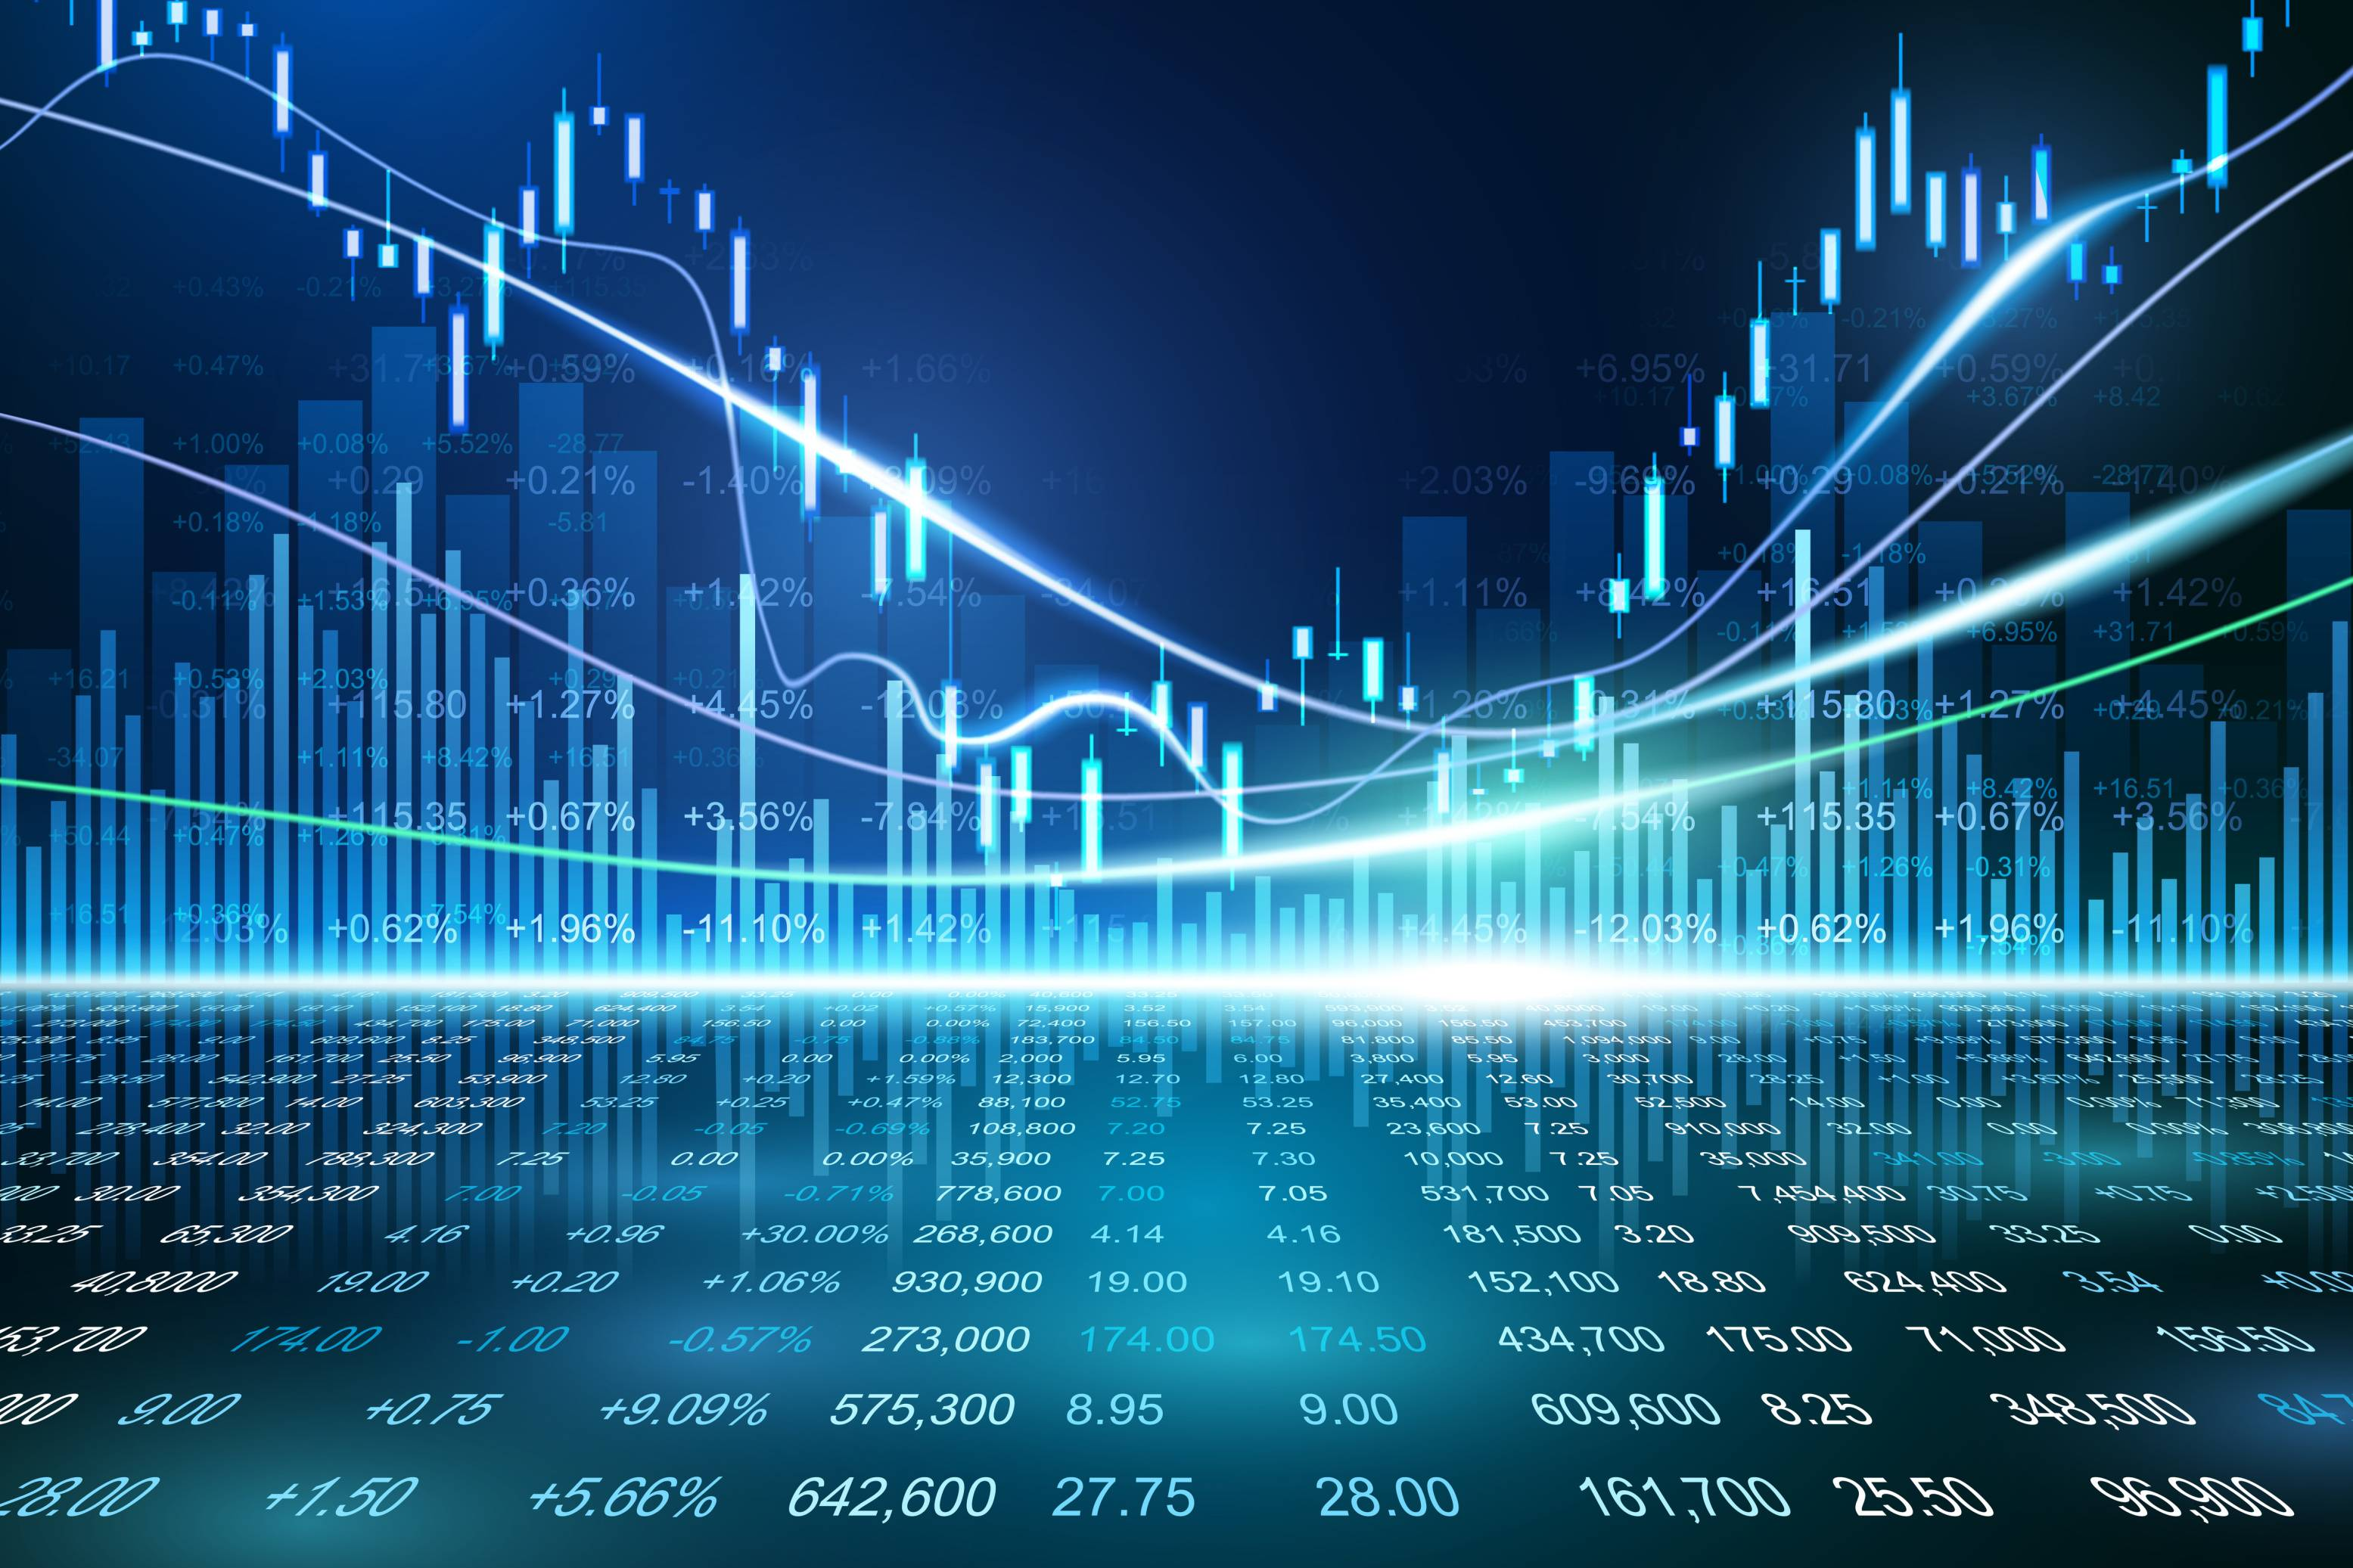 Indie Semiconductor Stock Forecast – analysts see 90% upside